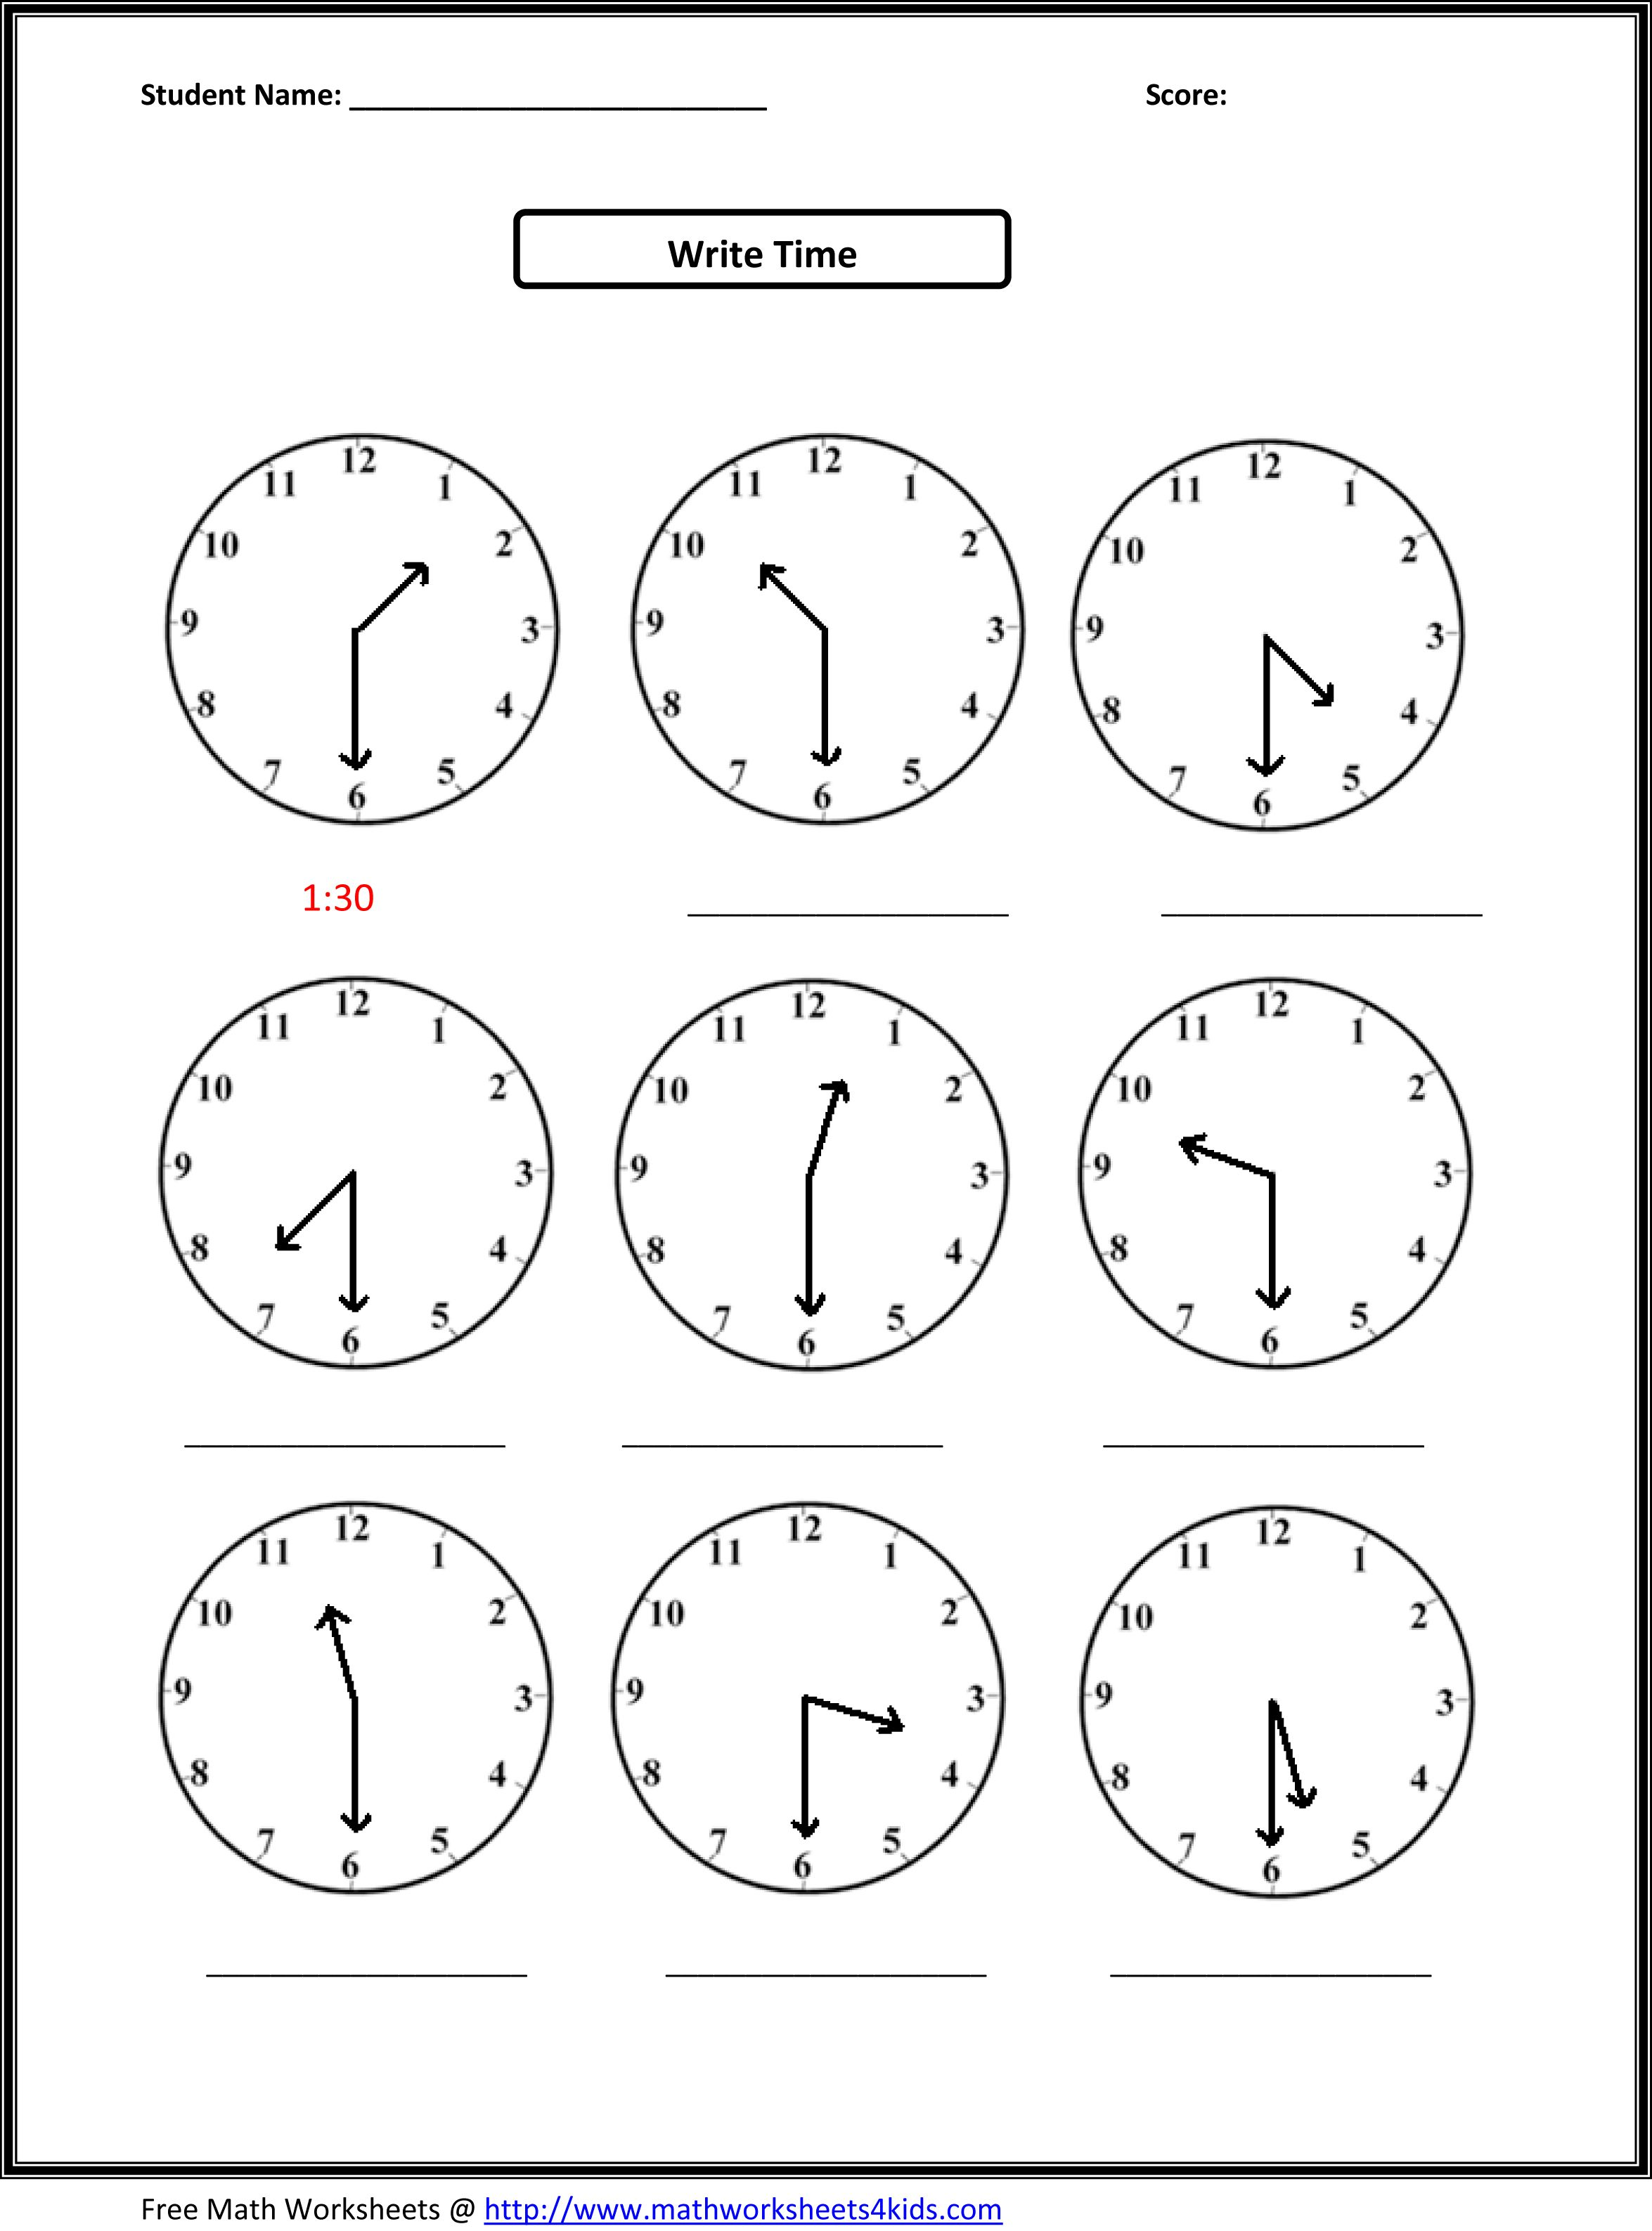 Proatmealus  Stunning Worksheet On Time For Grade   Reocurent With Gorgeous Free Printable Telling Time Worksheets Nd Grade  Reocurent With Delectable Primary  Maths Worksheets Also Math Worksheets Grade  Printable In Addition Place Value Quiz Worksheet And Rounding Numbers To The Nearest Thousand Worksheets As Well As Ratio Problems Worksheets Additionally Employee Worksheet Template From Reocurentcom With Proatmealus  Gorgeous Worksheet On Time For Grade   Reocurent With Delectable Free Printable Telling Time Worksheets Nd Grade  Reocurent And Stunning Primary  Maths Worksheets Also Math Worksheets Grade  Printable In Addition Place Value Quiz Worksheet From Reocurentcom